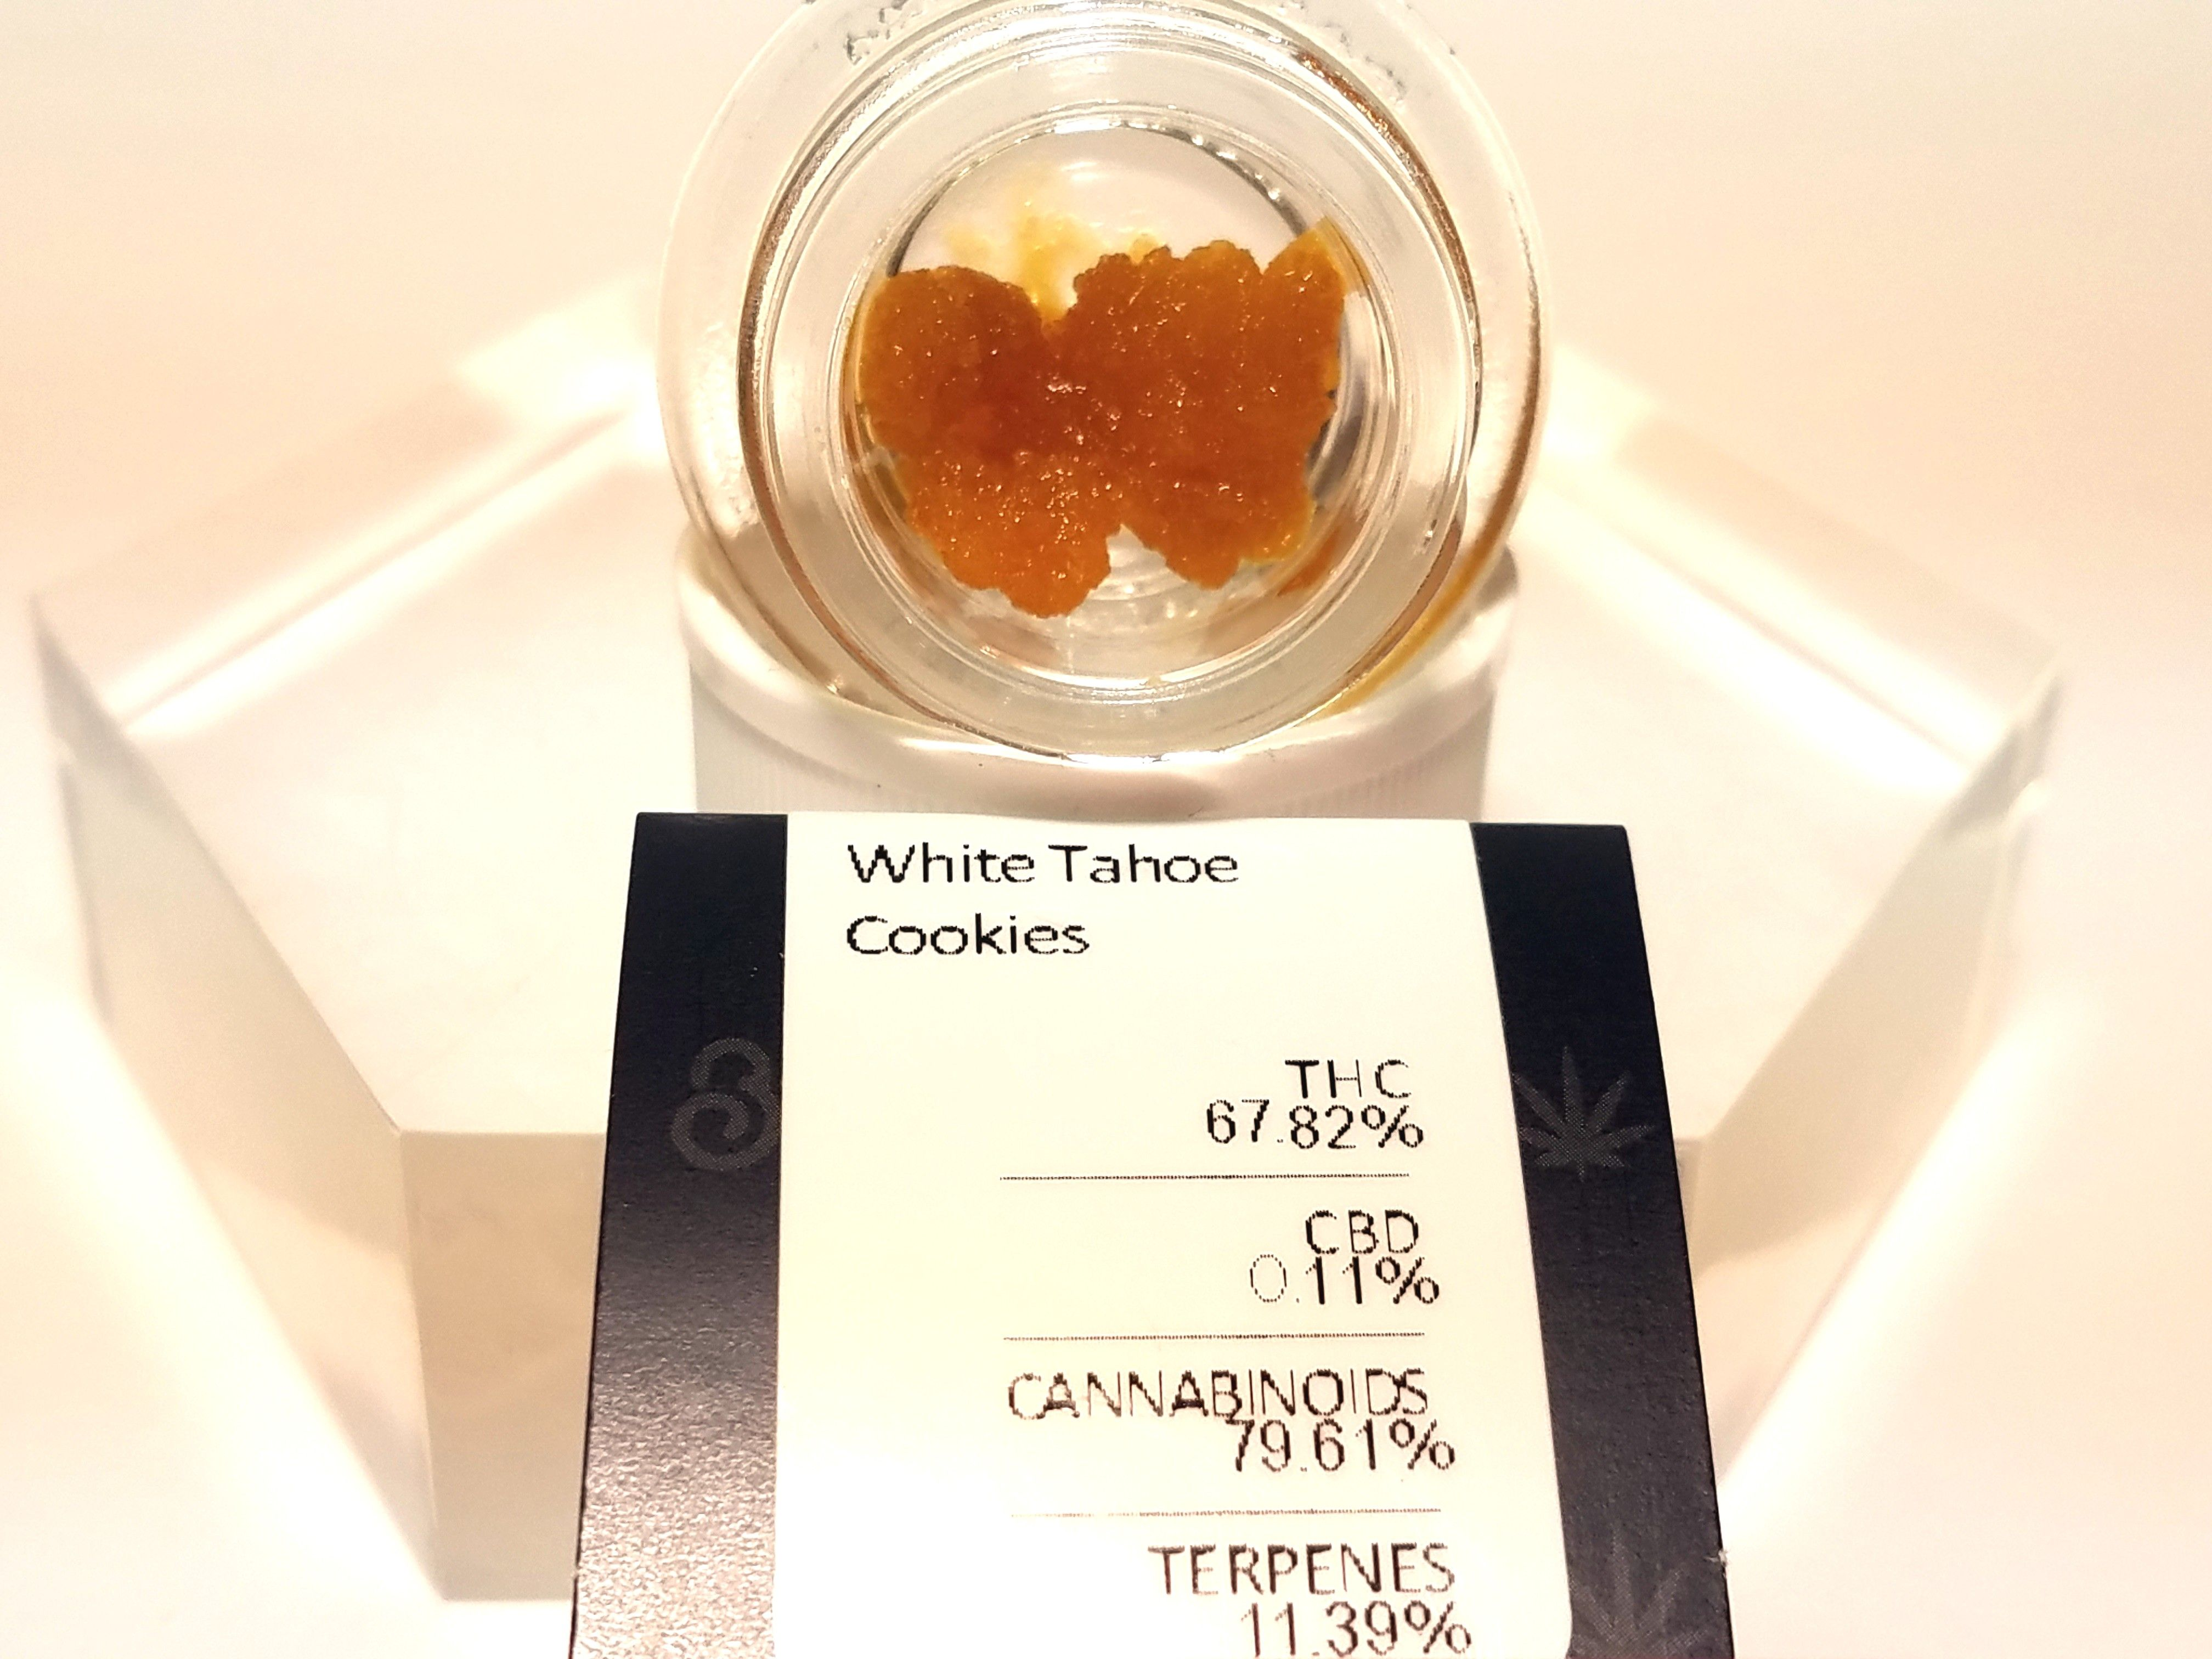 Bobsled - White Tahoe Cookies, Indica, Live Resin